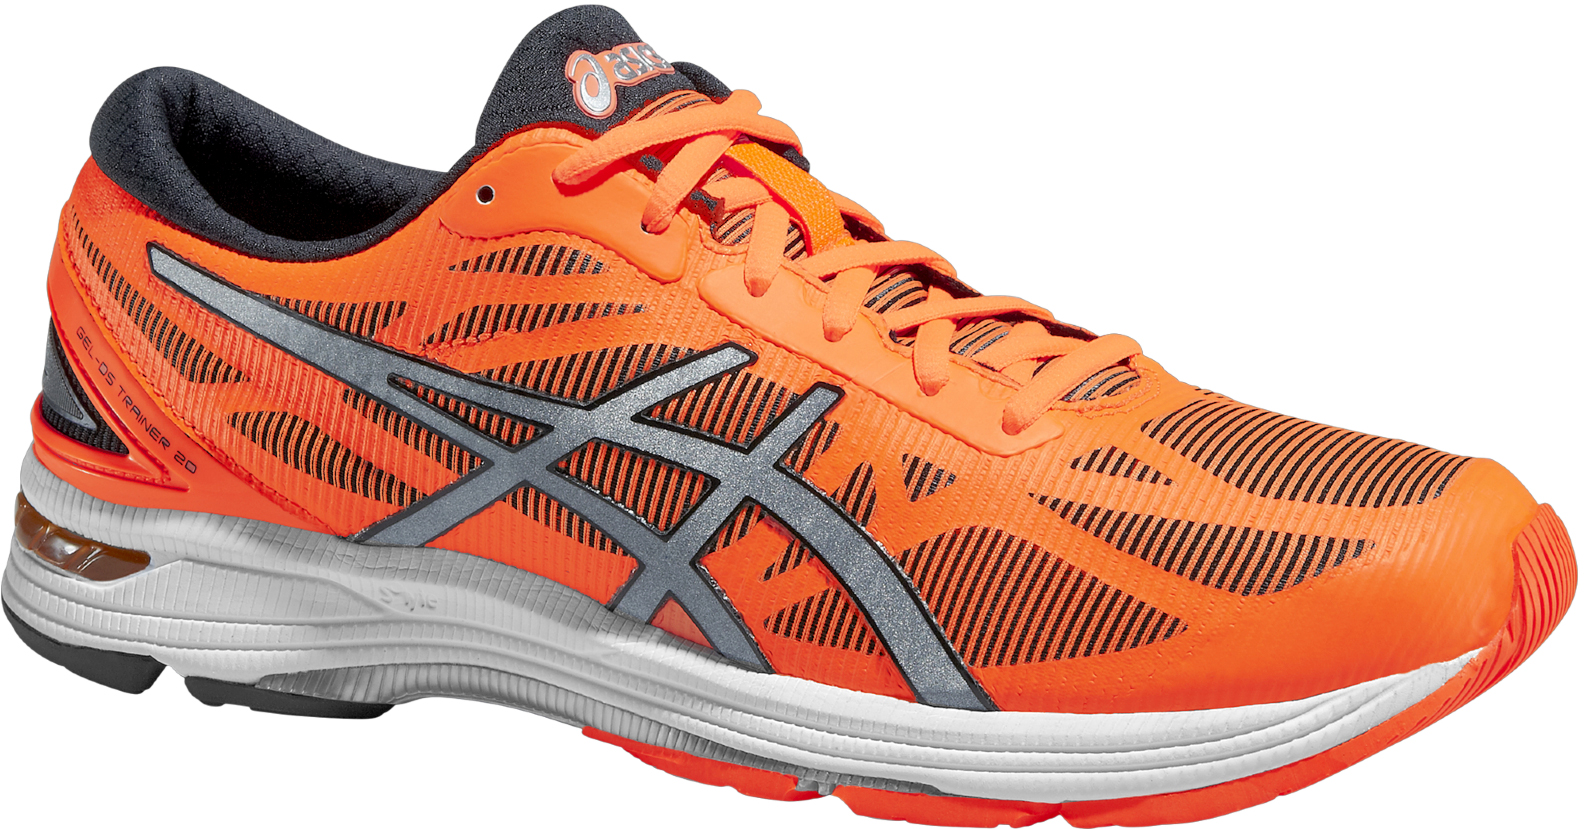 asics gel ds trainer 20 running shoes ss15 review